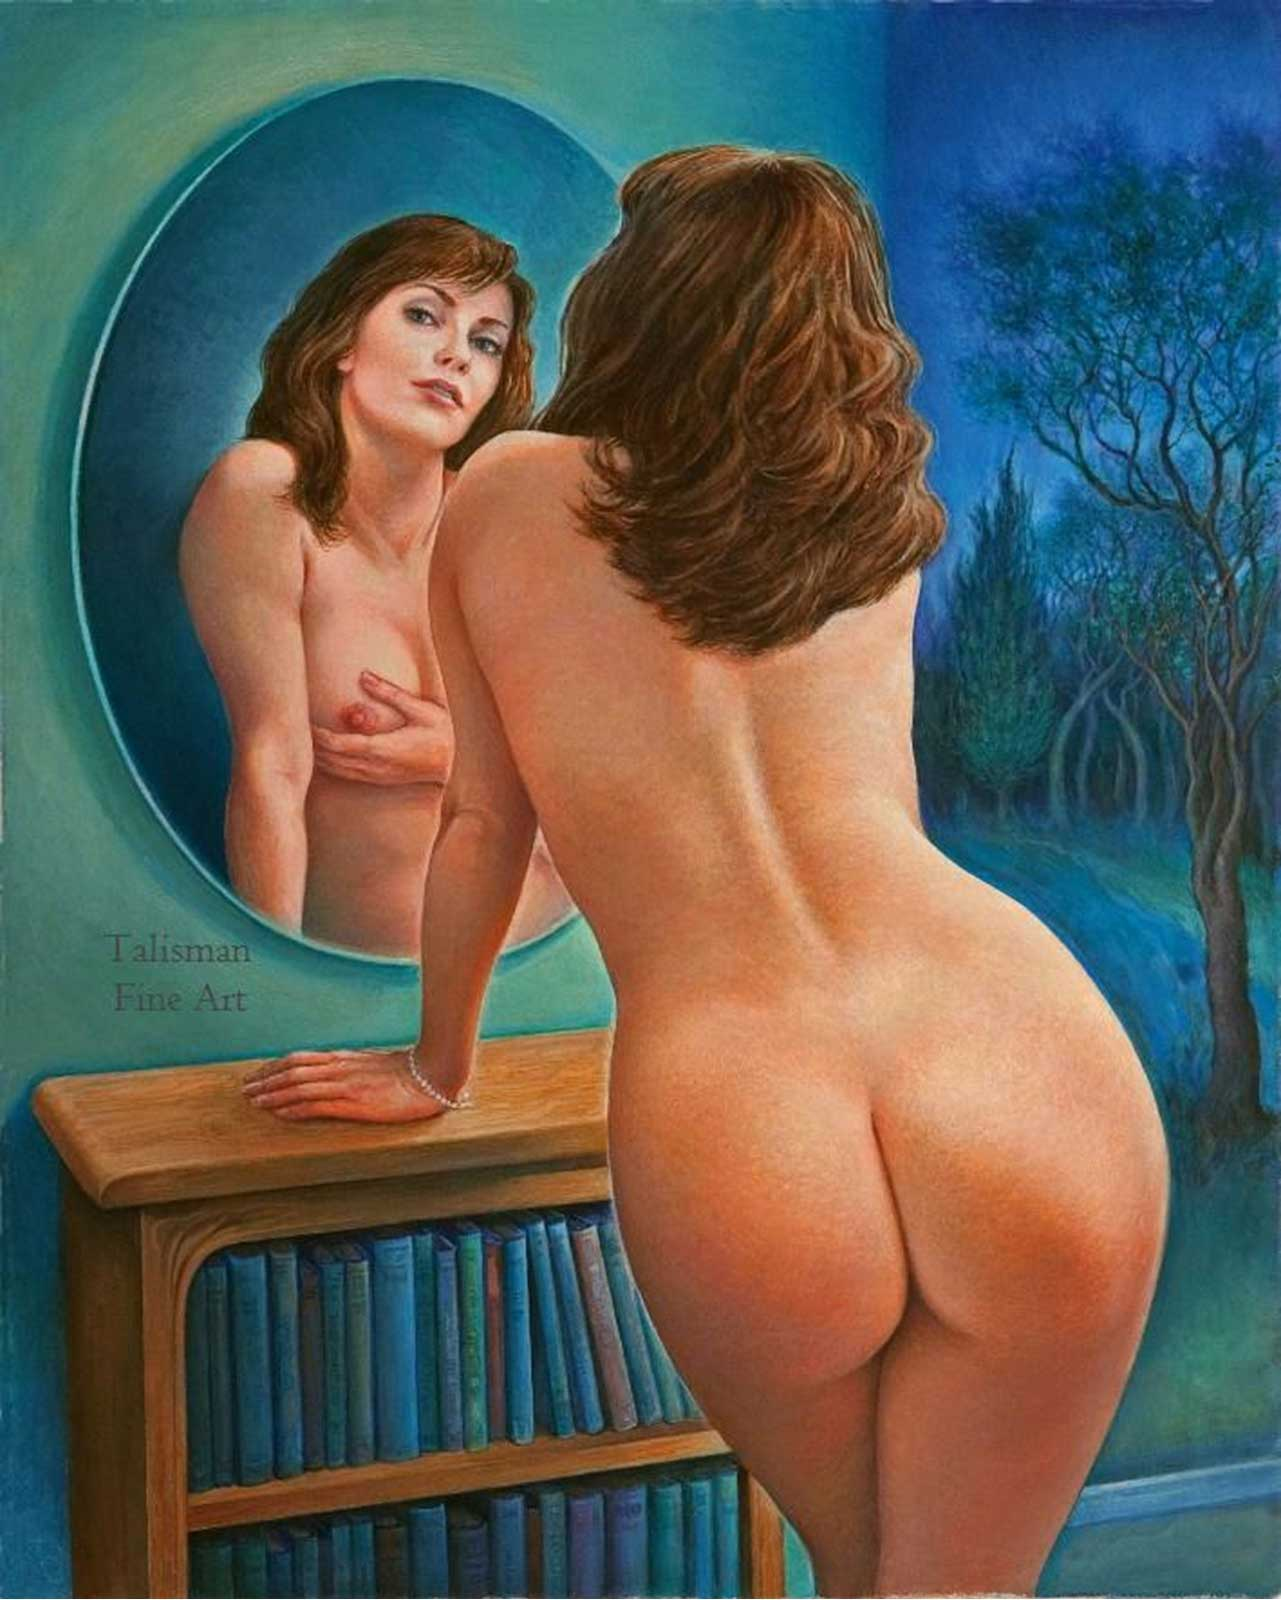 Talusman Fine Art Lynn Paula Russell - Mirror Lady (Sold) (We have more paintings by Lynn Paula Russell on this websit